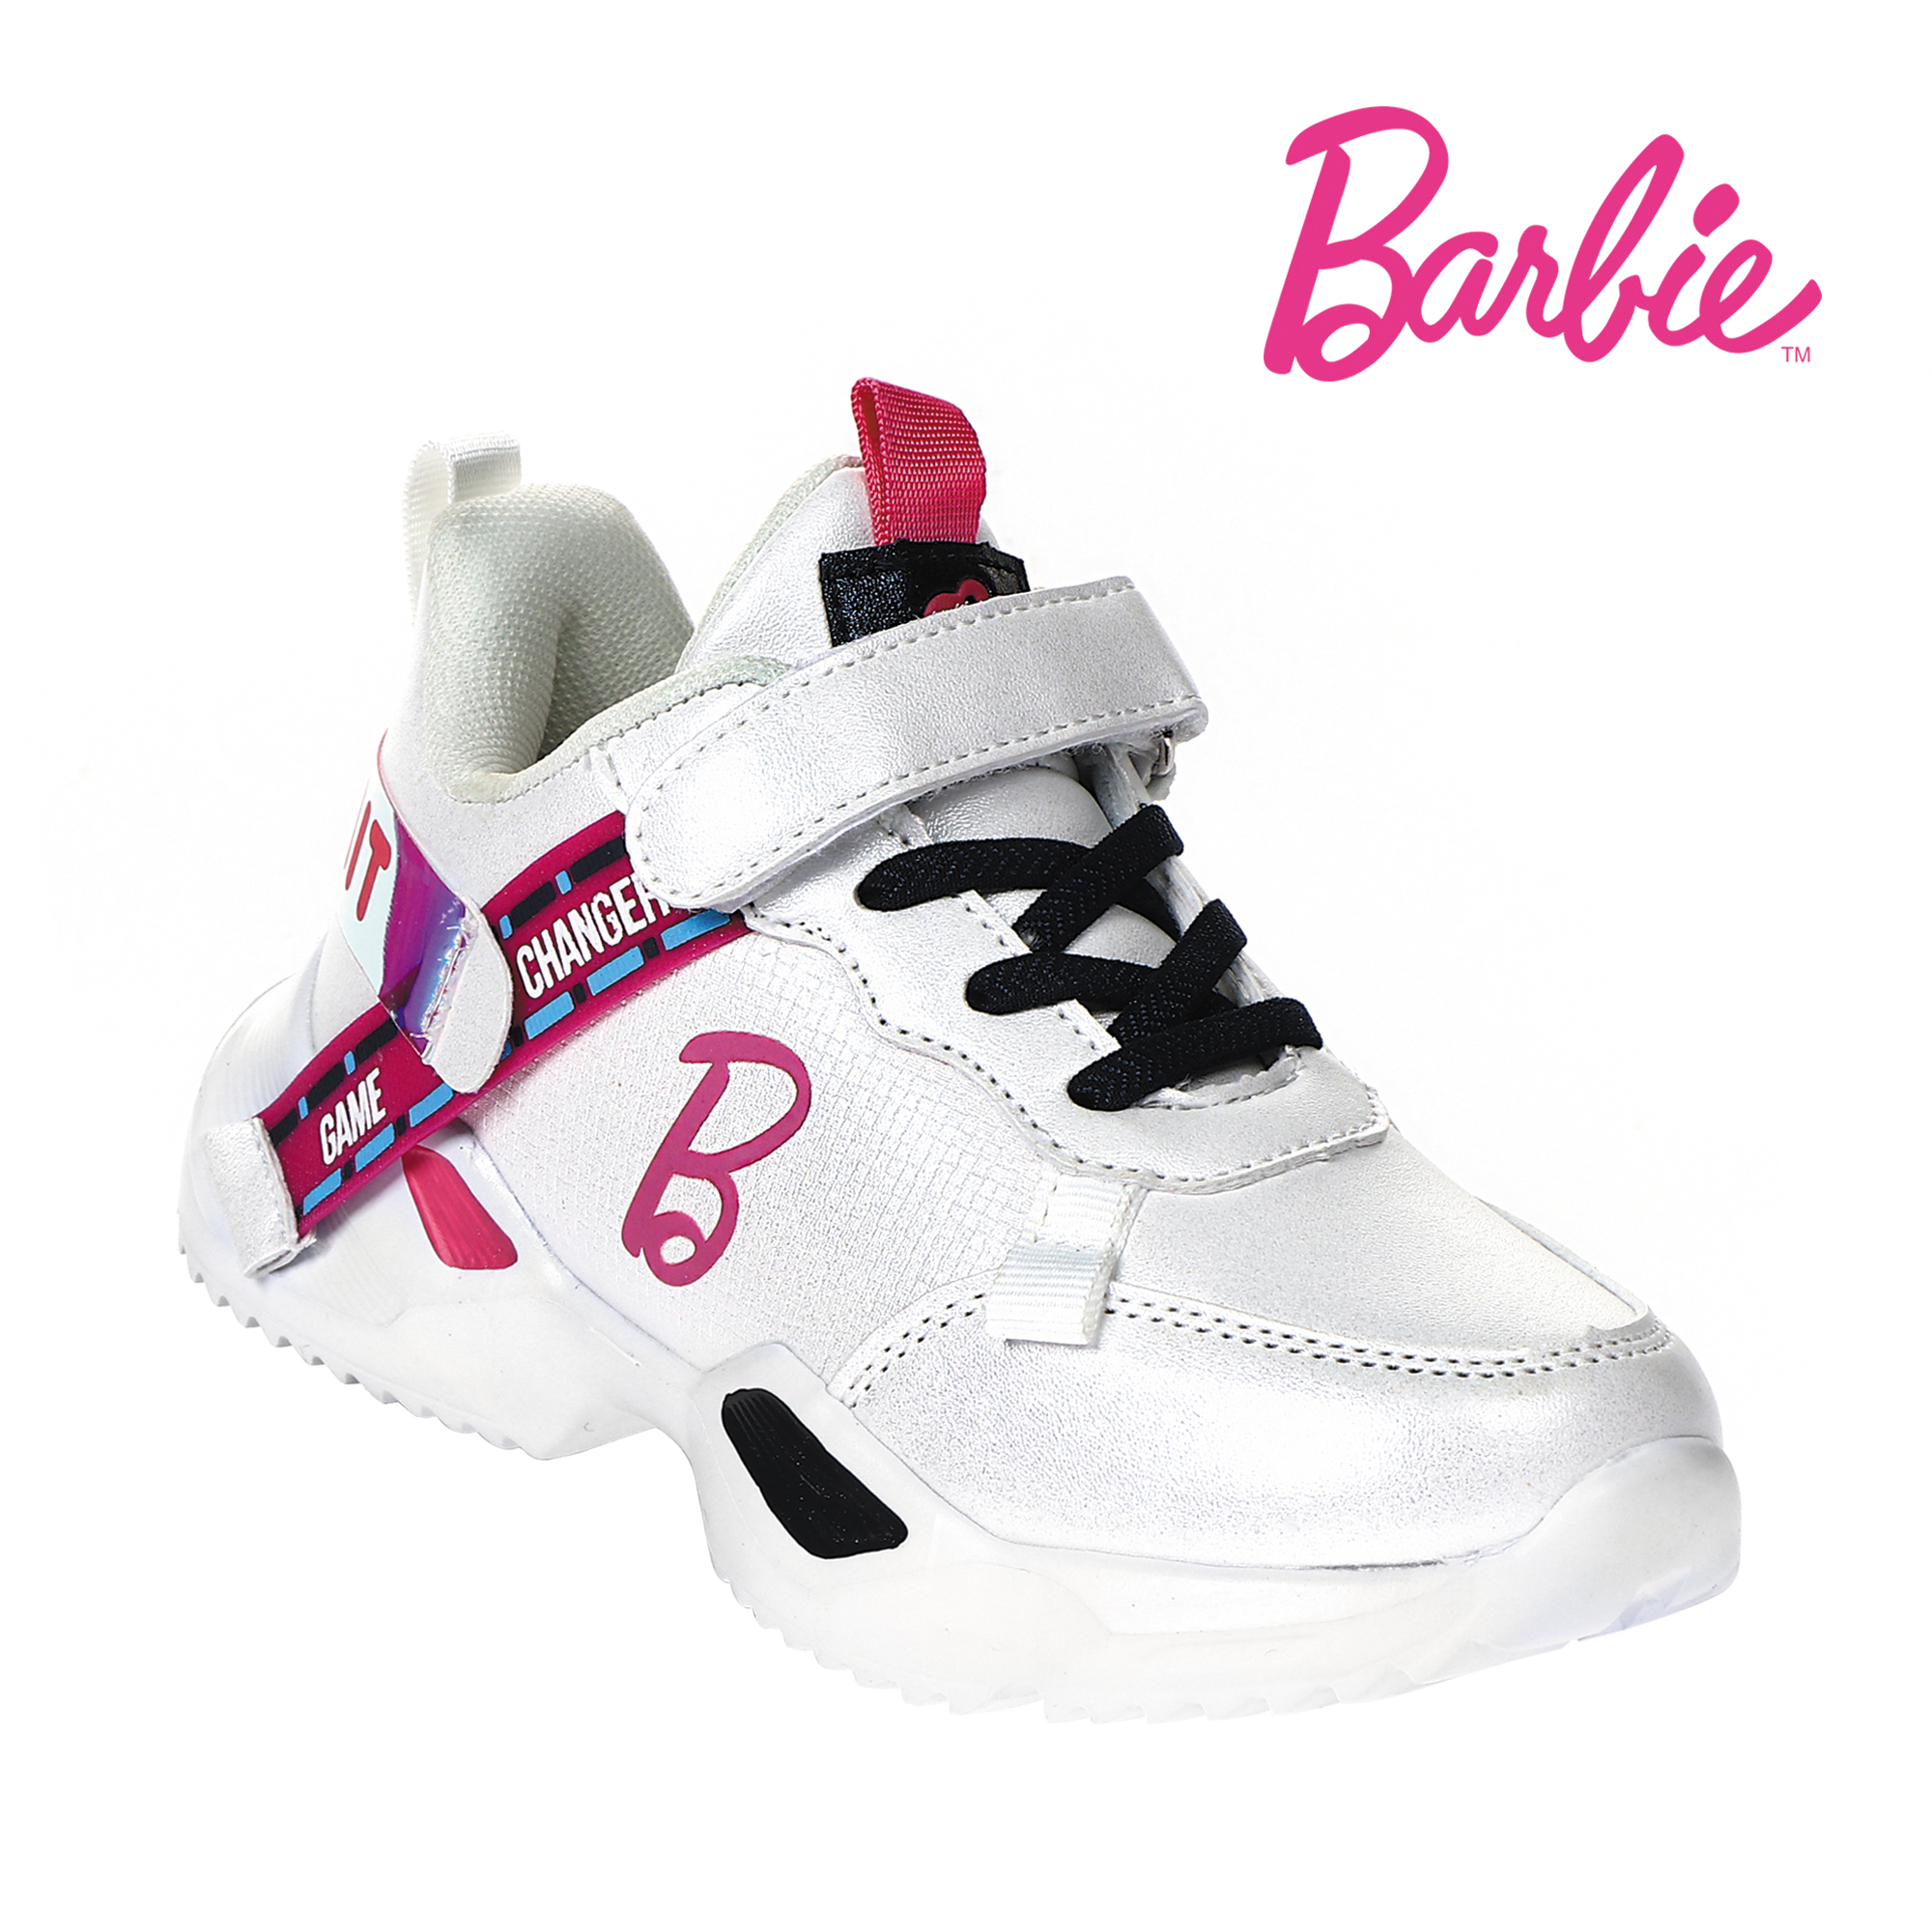 barbie shoes for girl cheap online